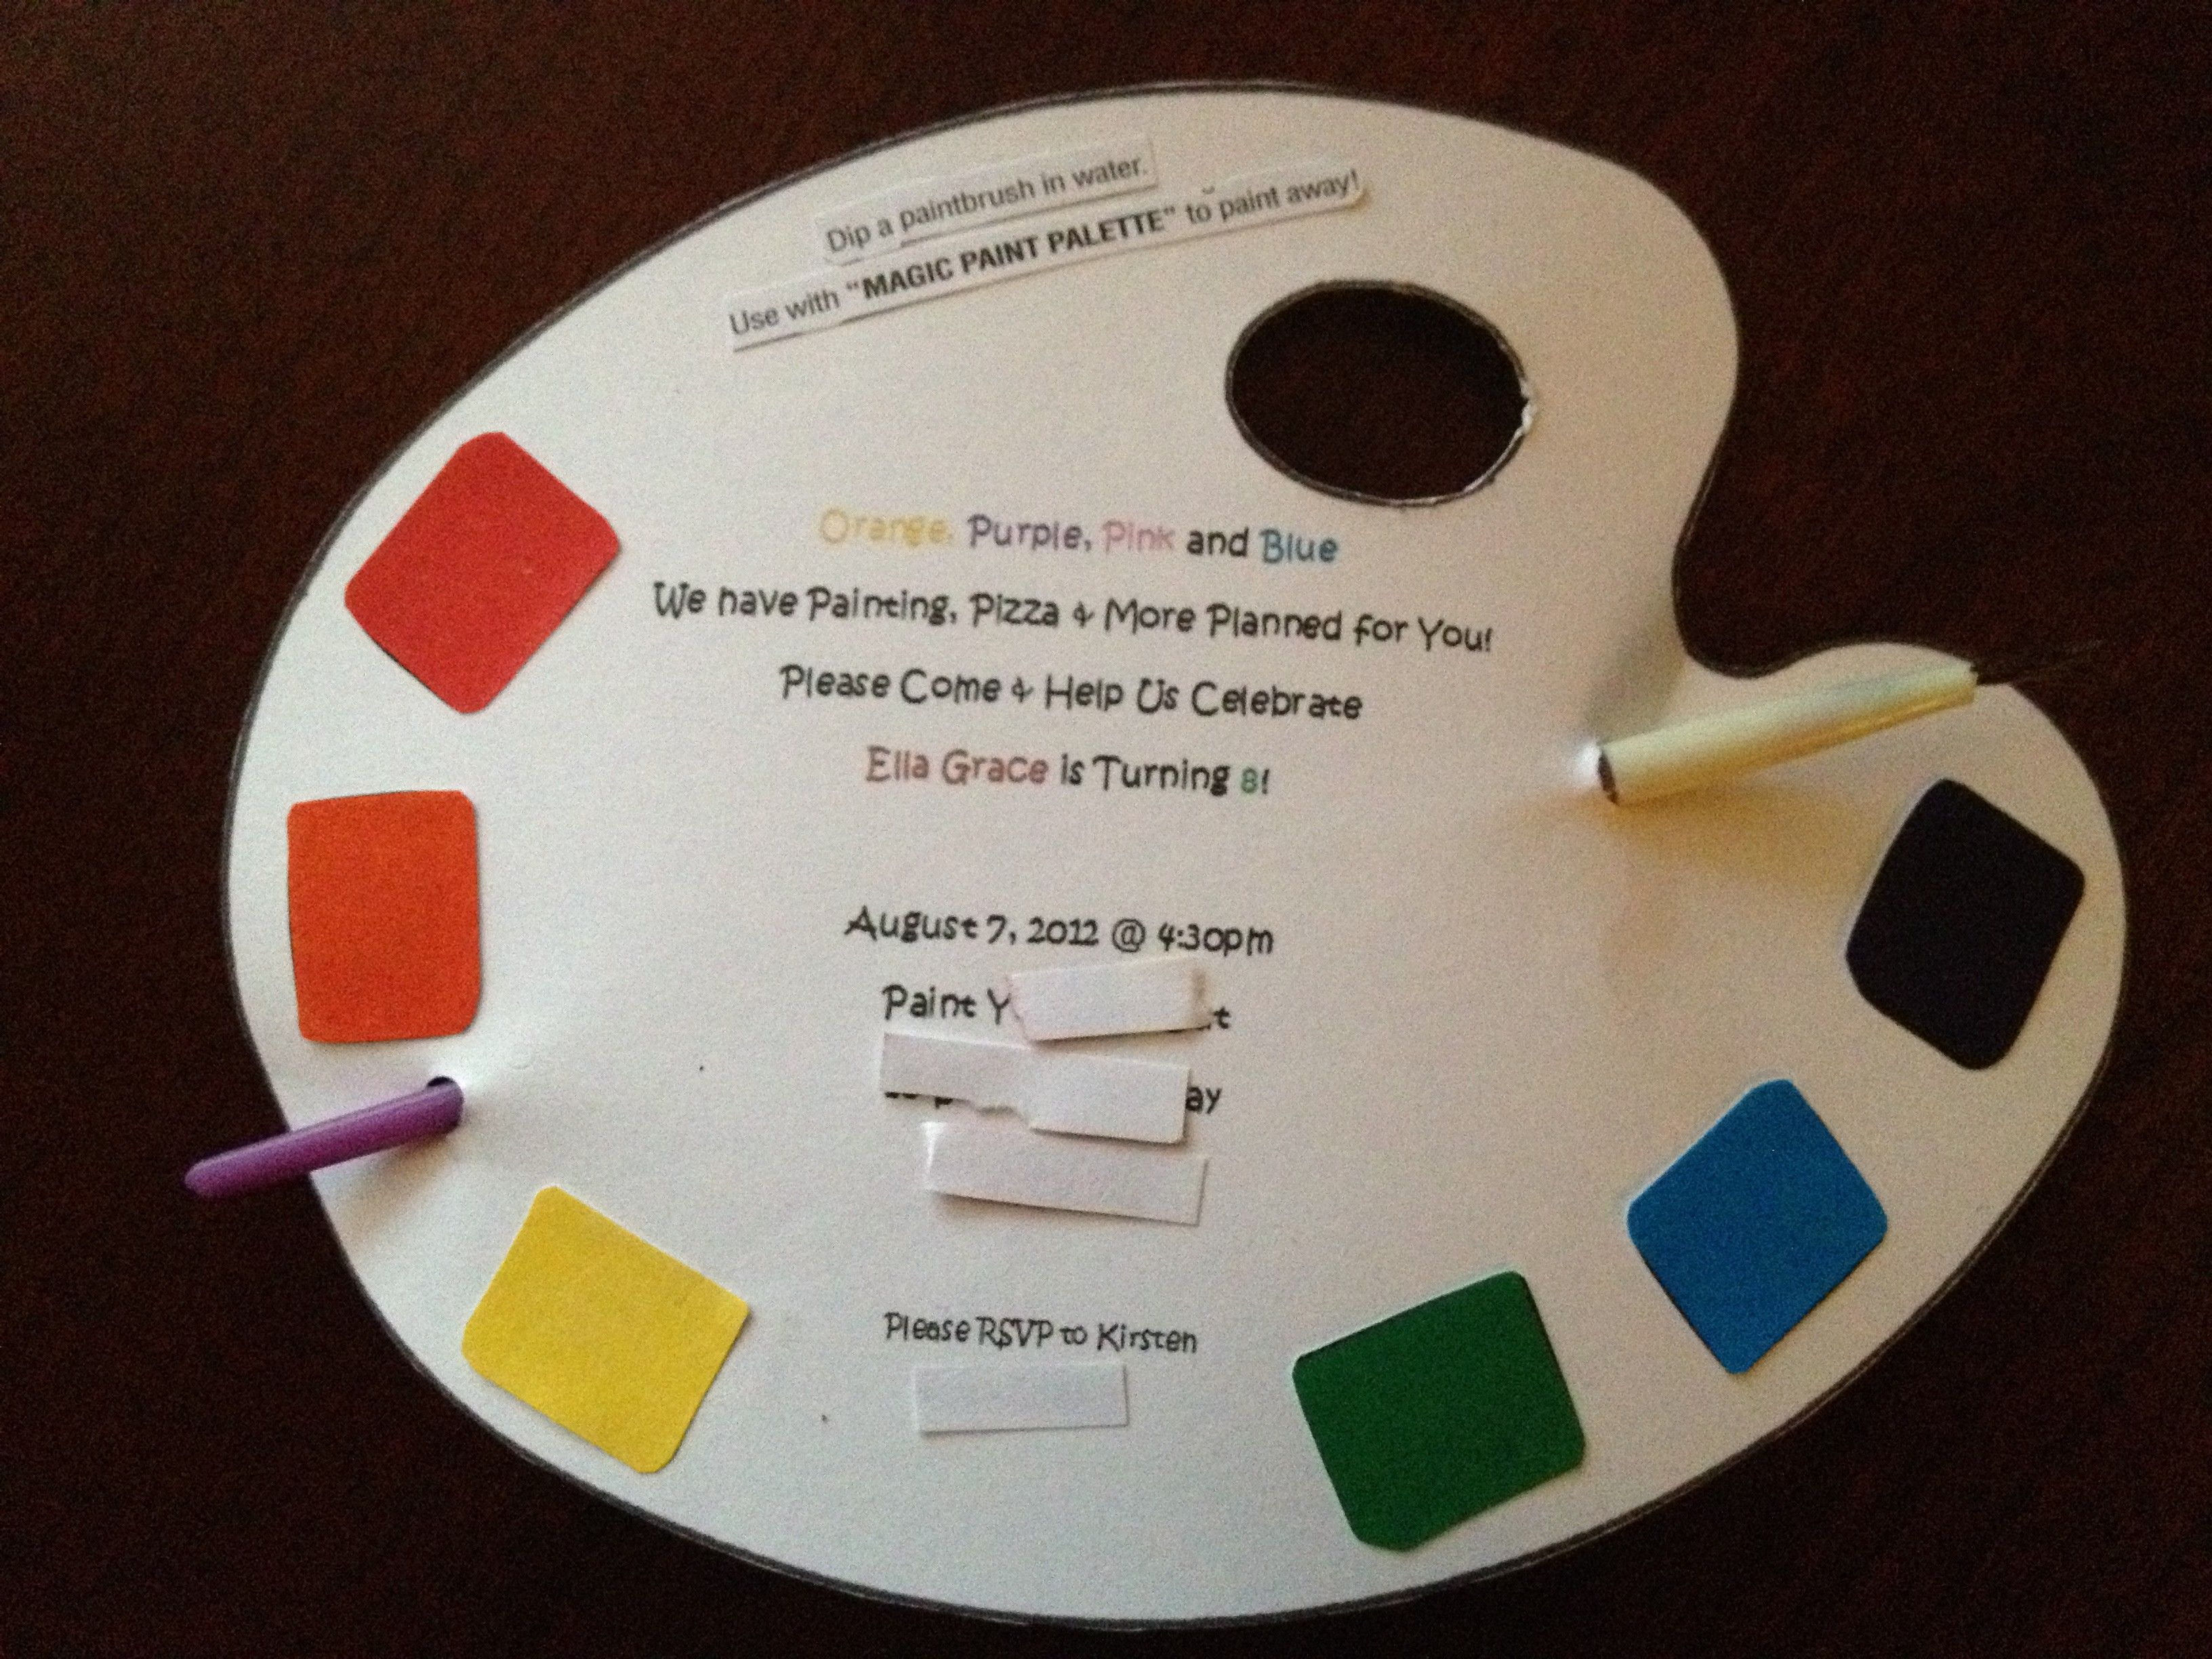 Day 7: Art Party Invite | Art party, Art party invitations and Party ...